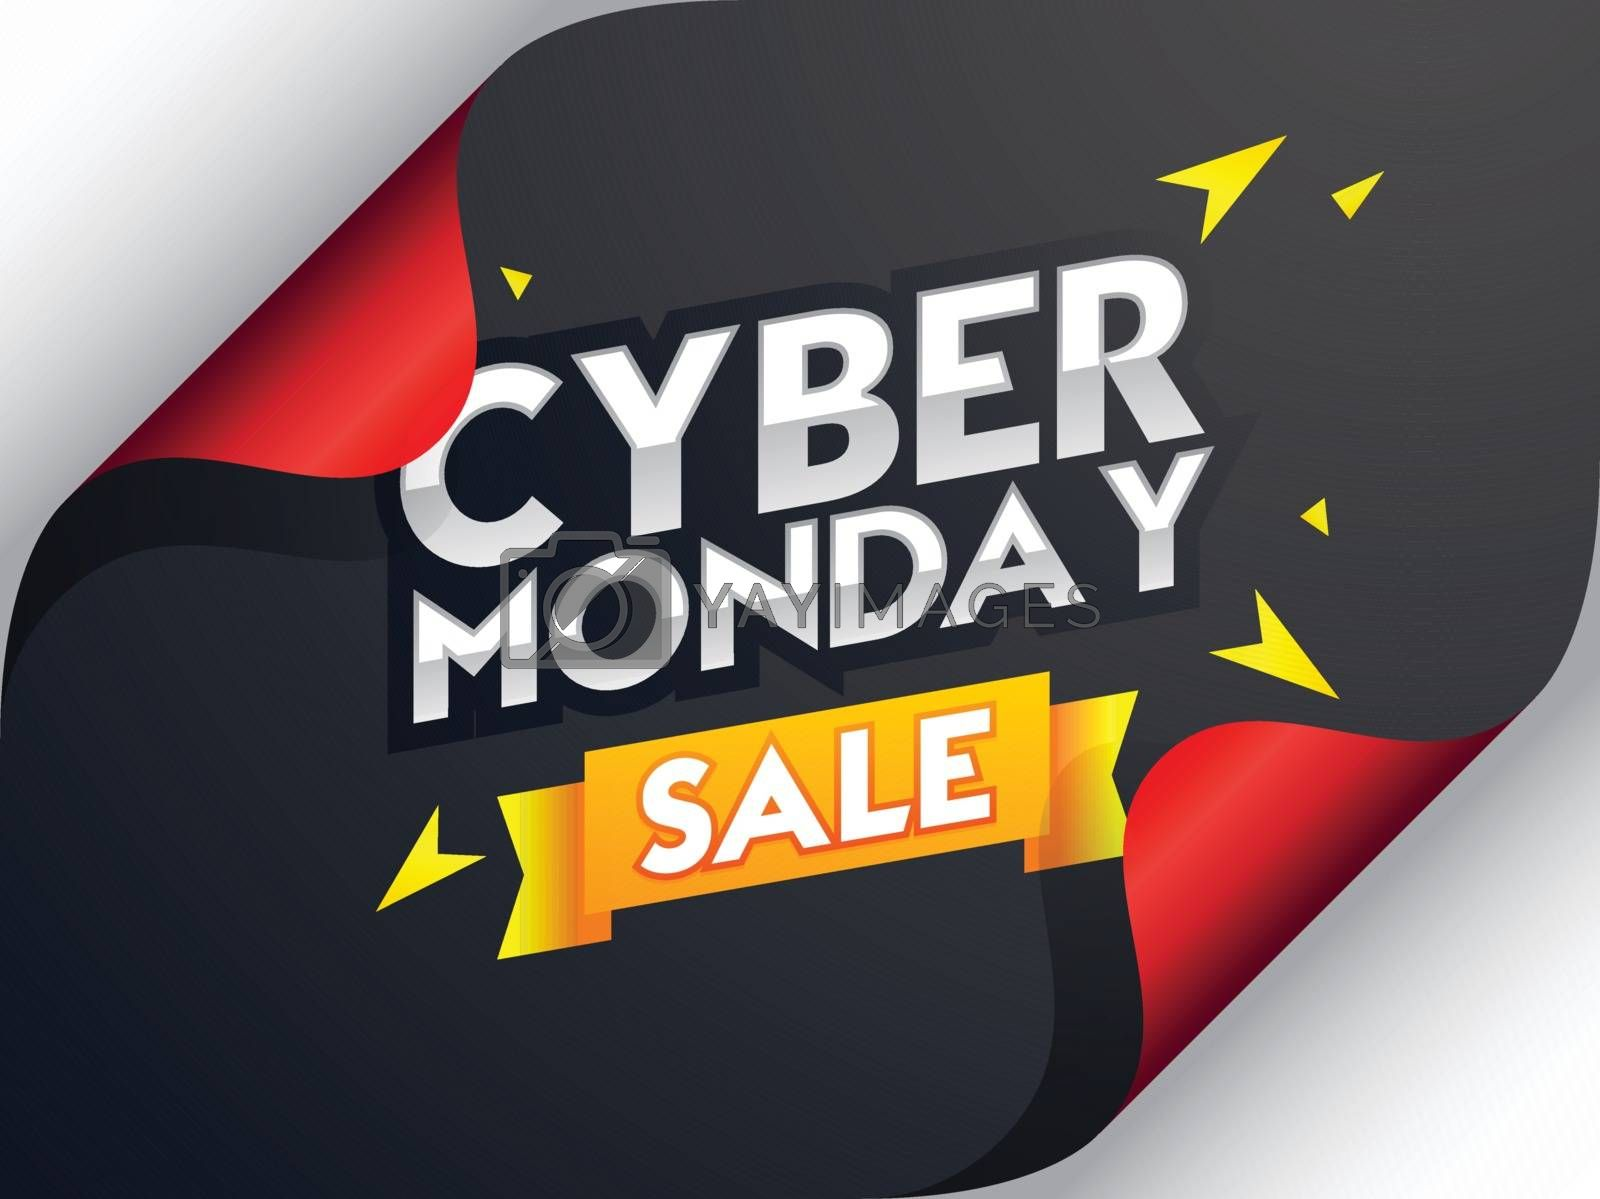 Cyber Monday Sale lettering on curl paper background, advertisin by aispl